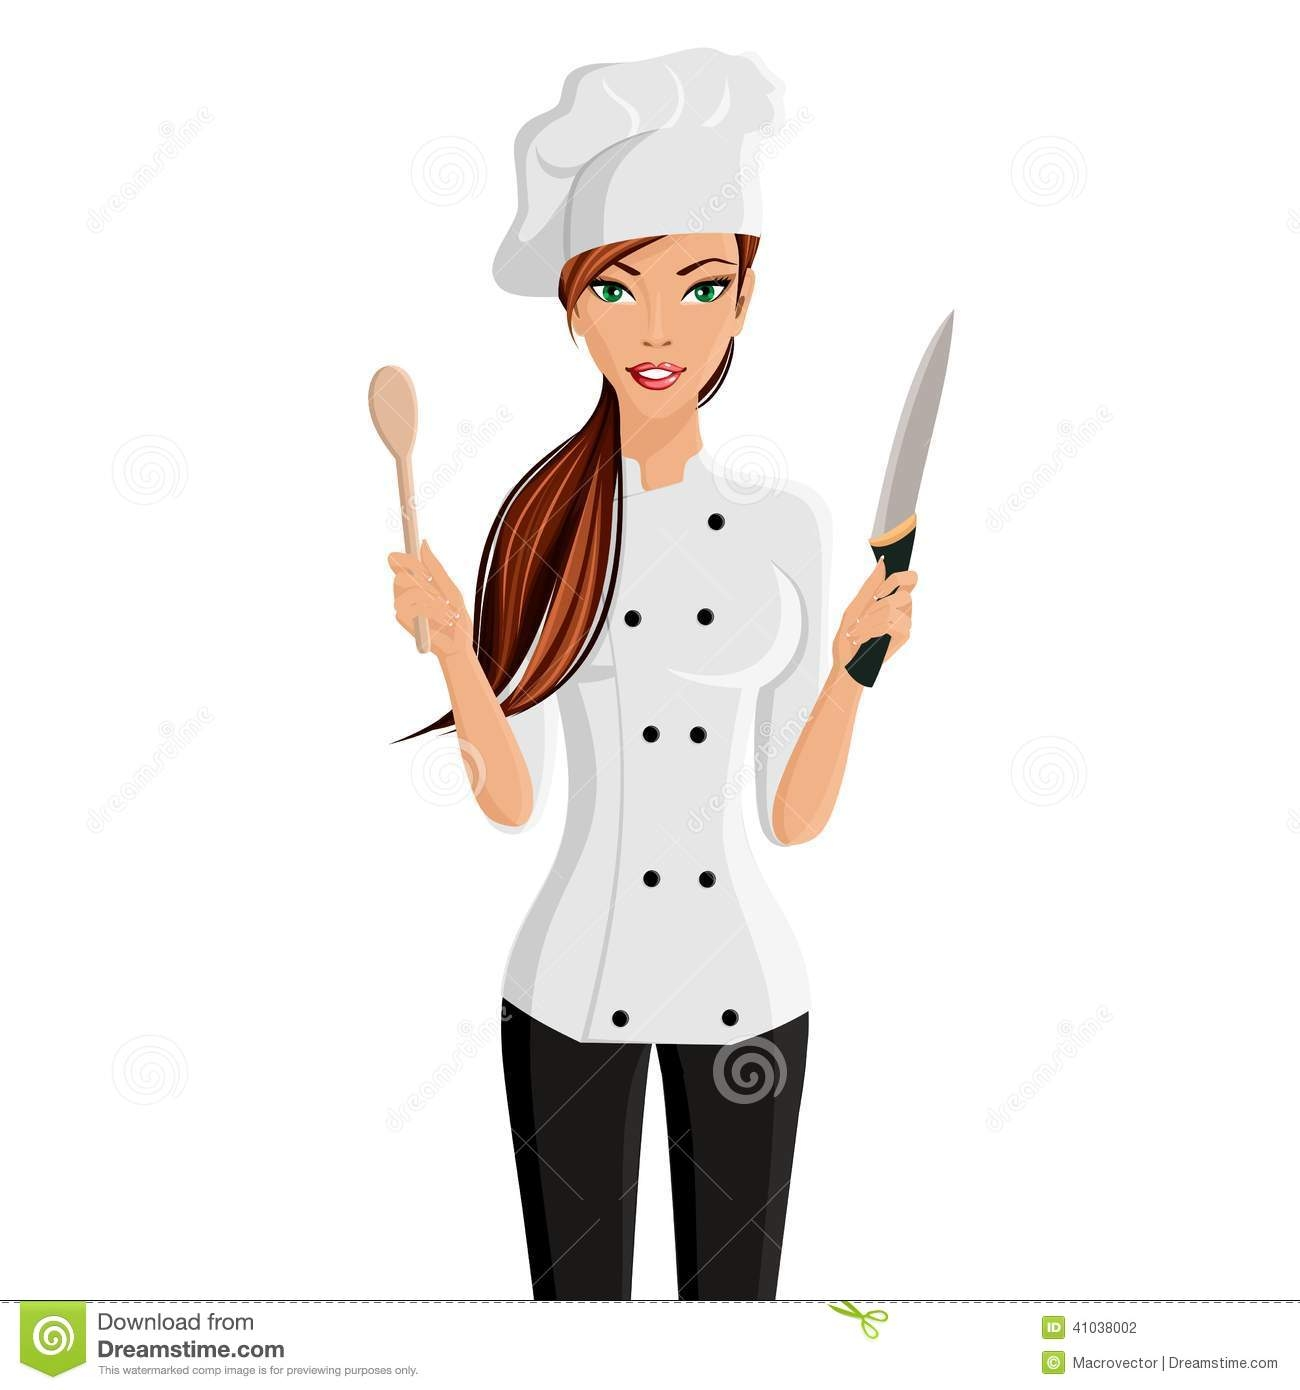 Kitchen chef clipart girl clip black and white download Kitchen Chef Clipart Girl - clipartsgram.com clip black and white download